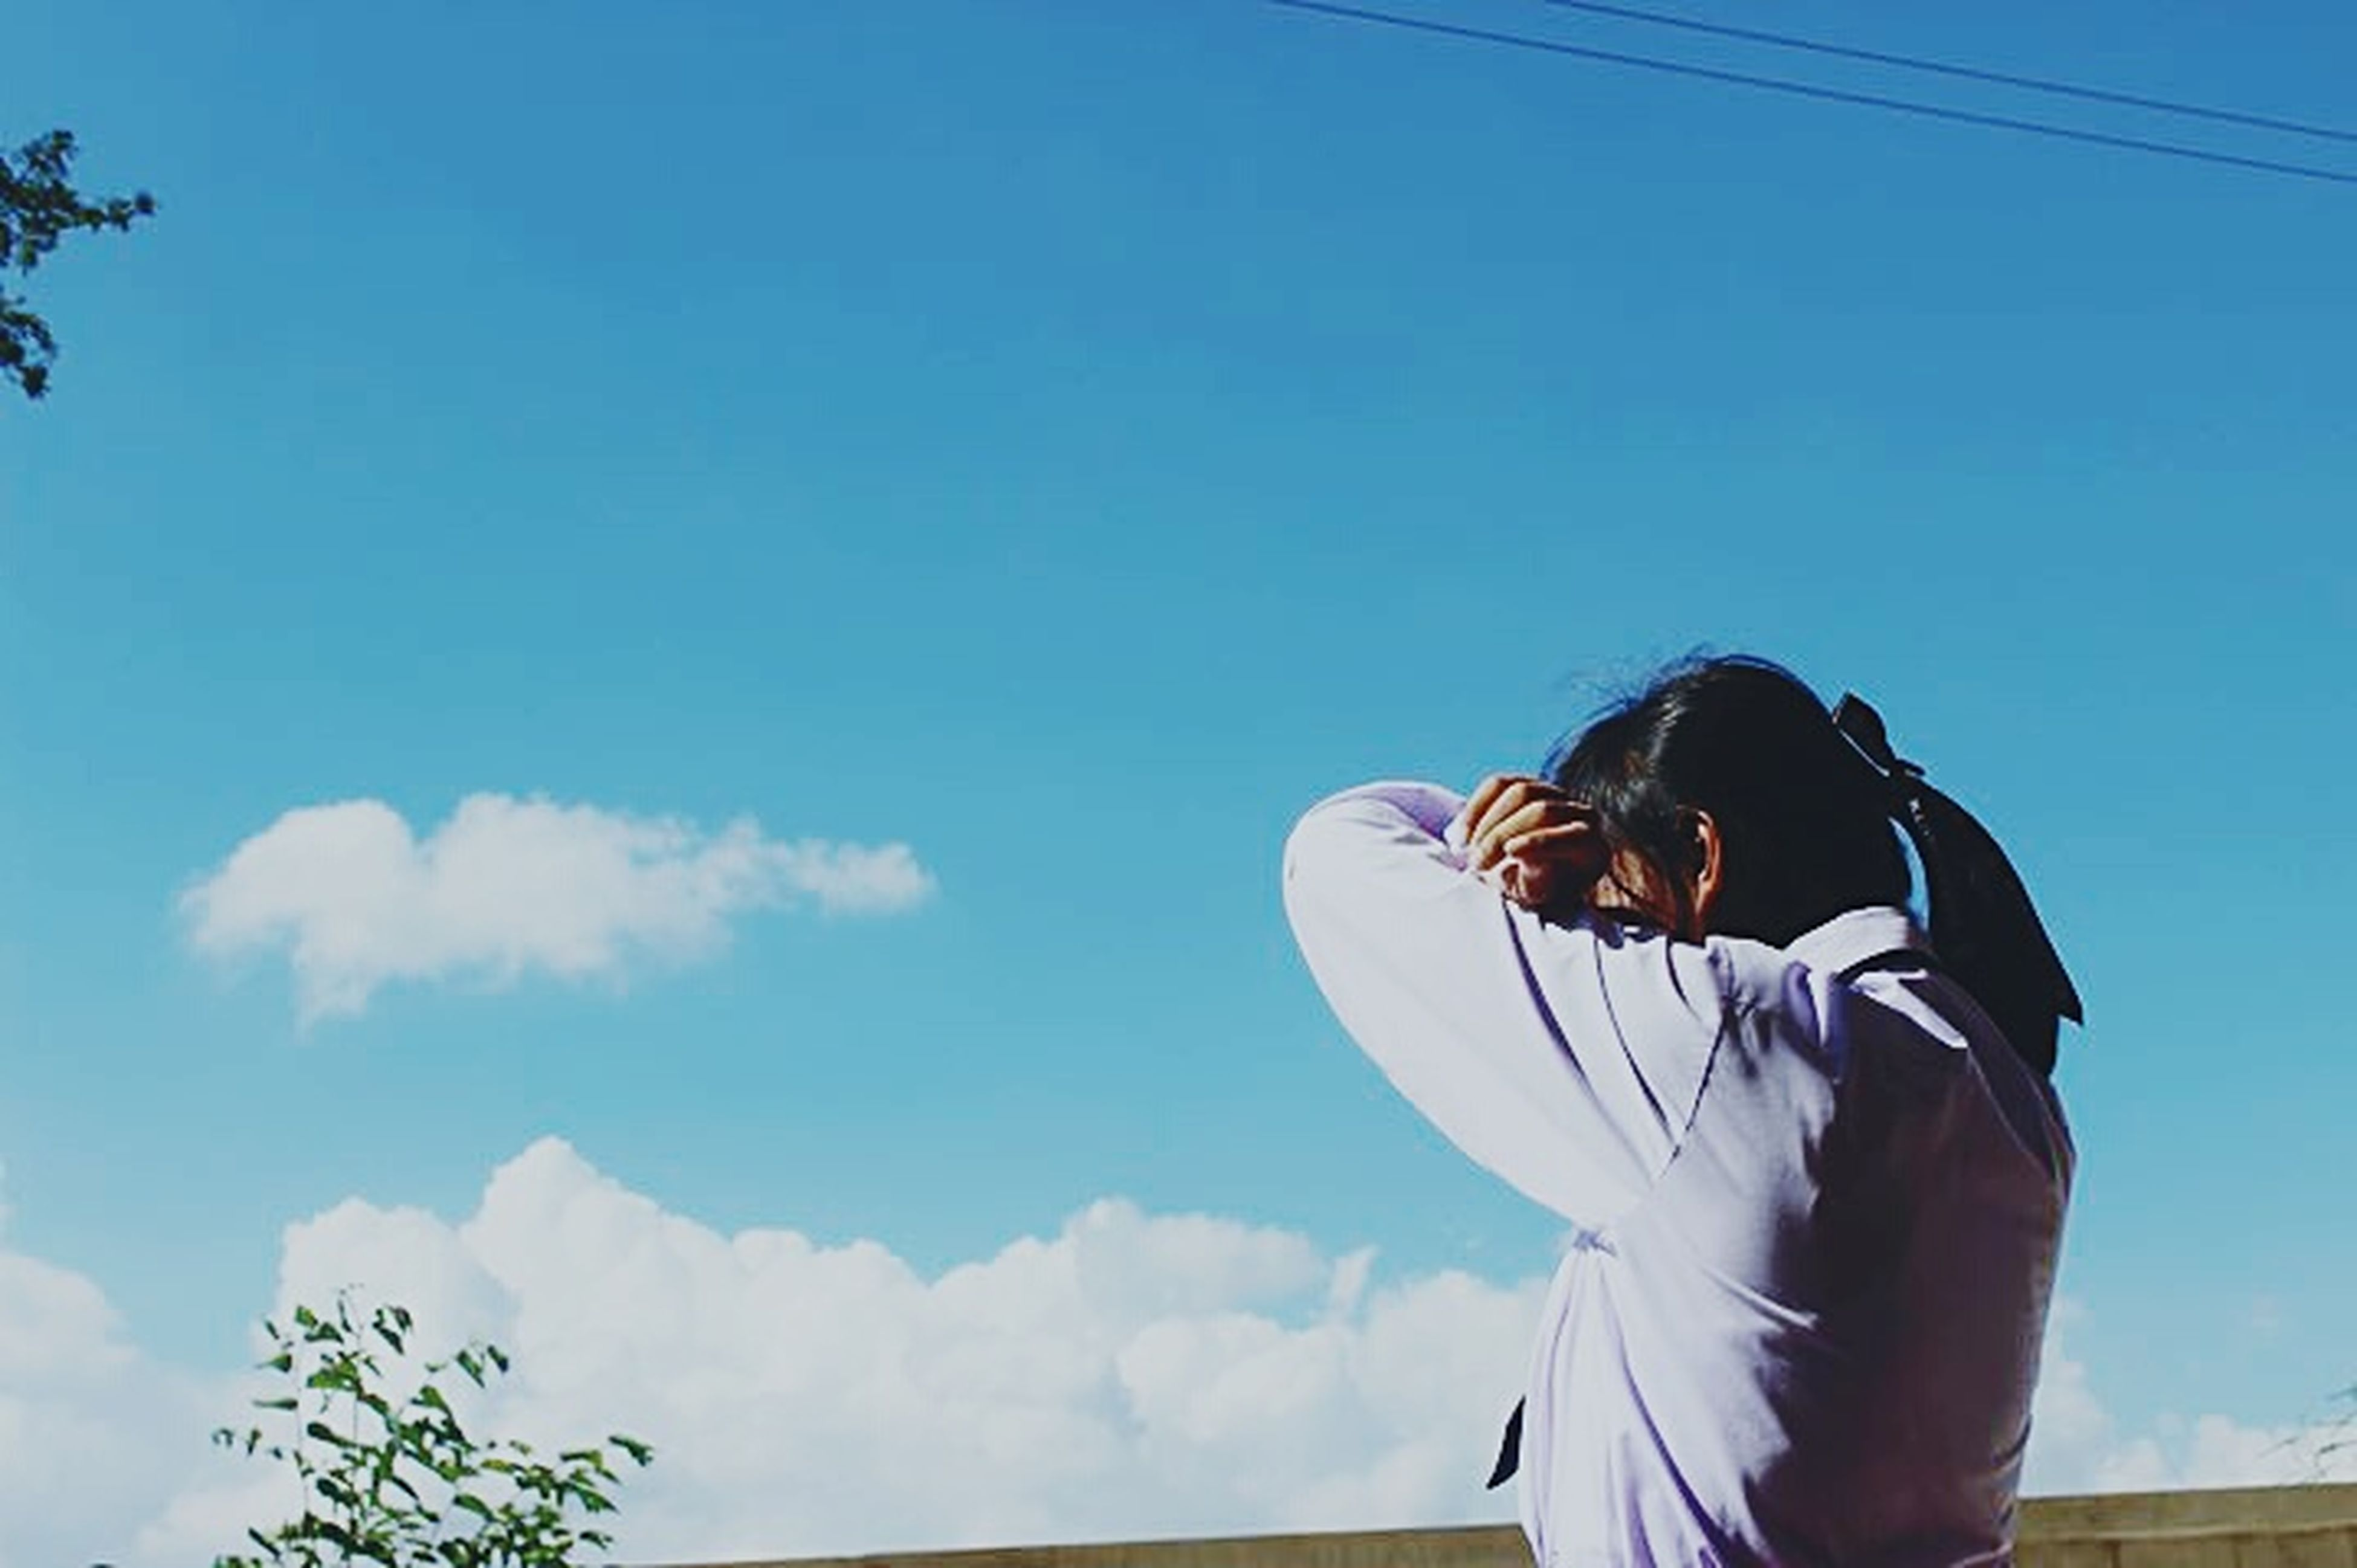 lifestyles, leisure activity, young adult, blue, clear sky, low angle view, casual clothing, sky, standing, young women, three quarter length, rear view, waist up, copy space, full length, long hair, holding, person